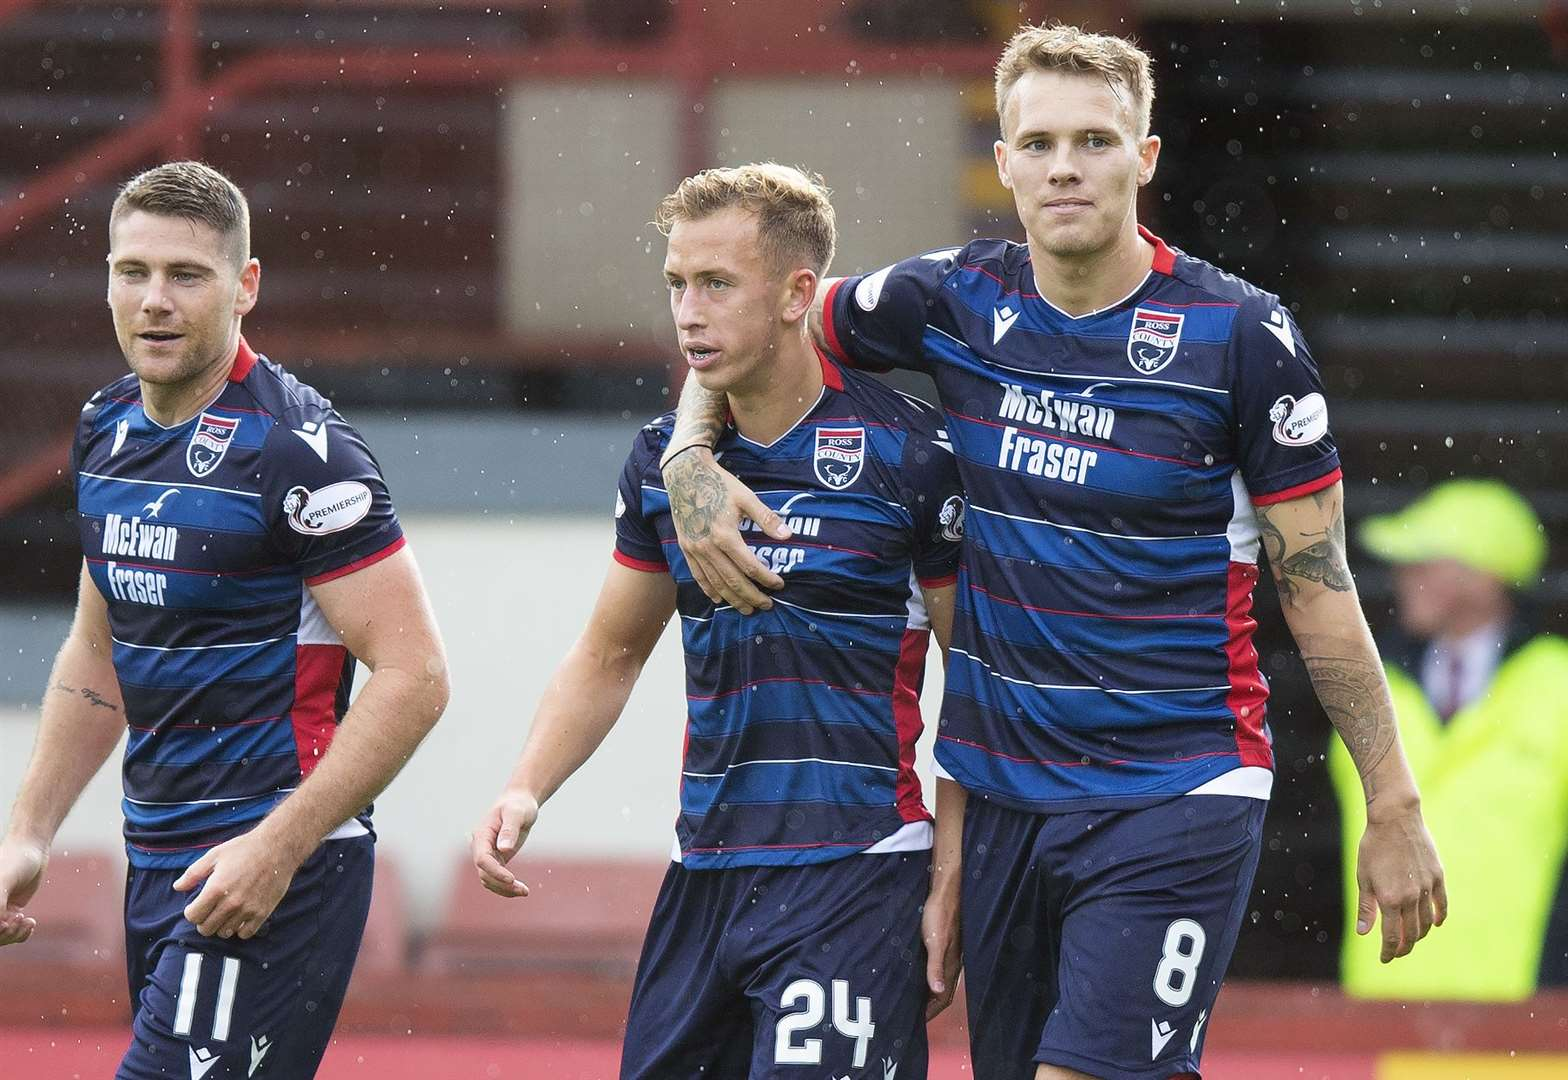 Ross County striker finally fit after Iranian exile